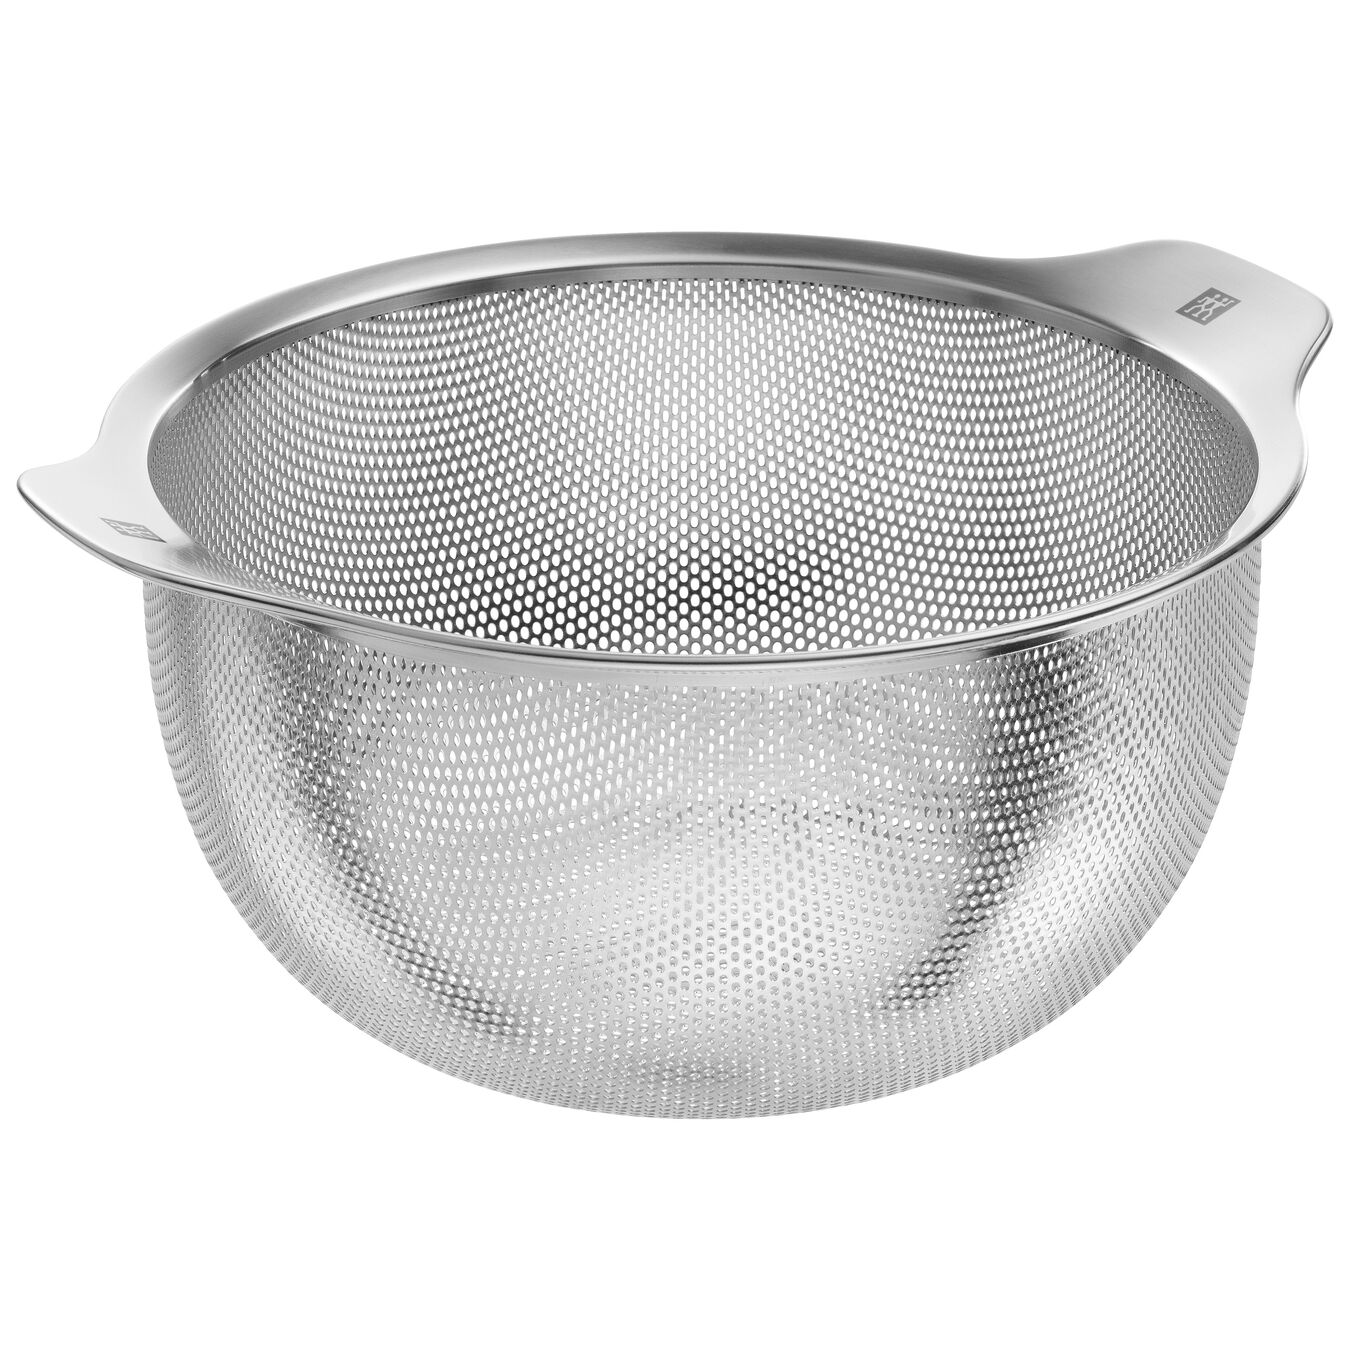 10.5-inch Colander, 18/10 Stainless Steel ,,large 1